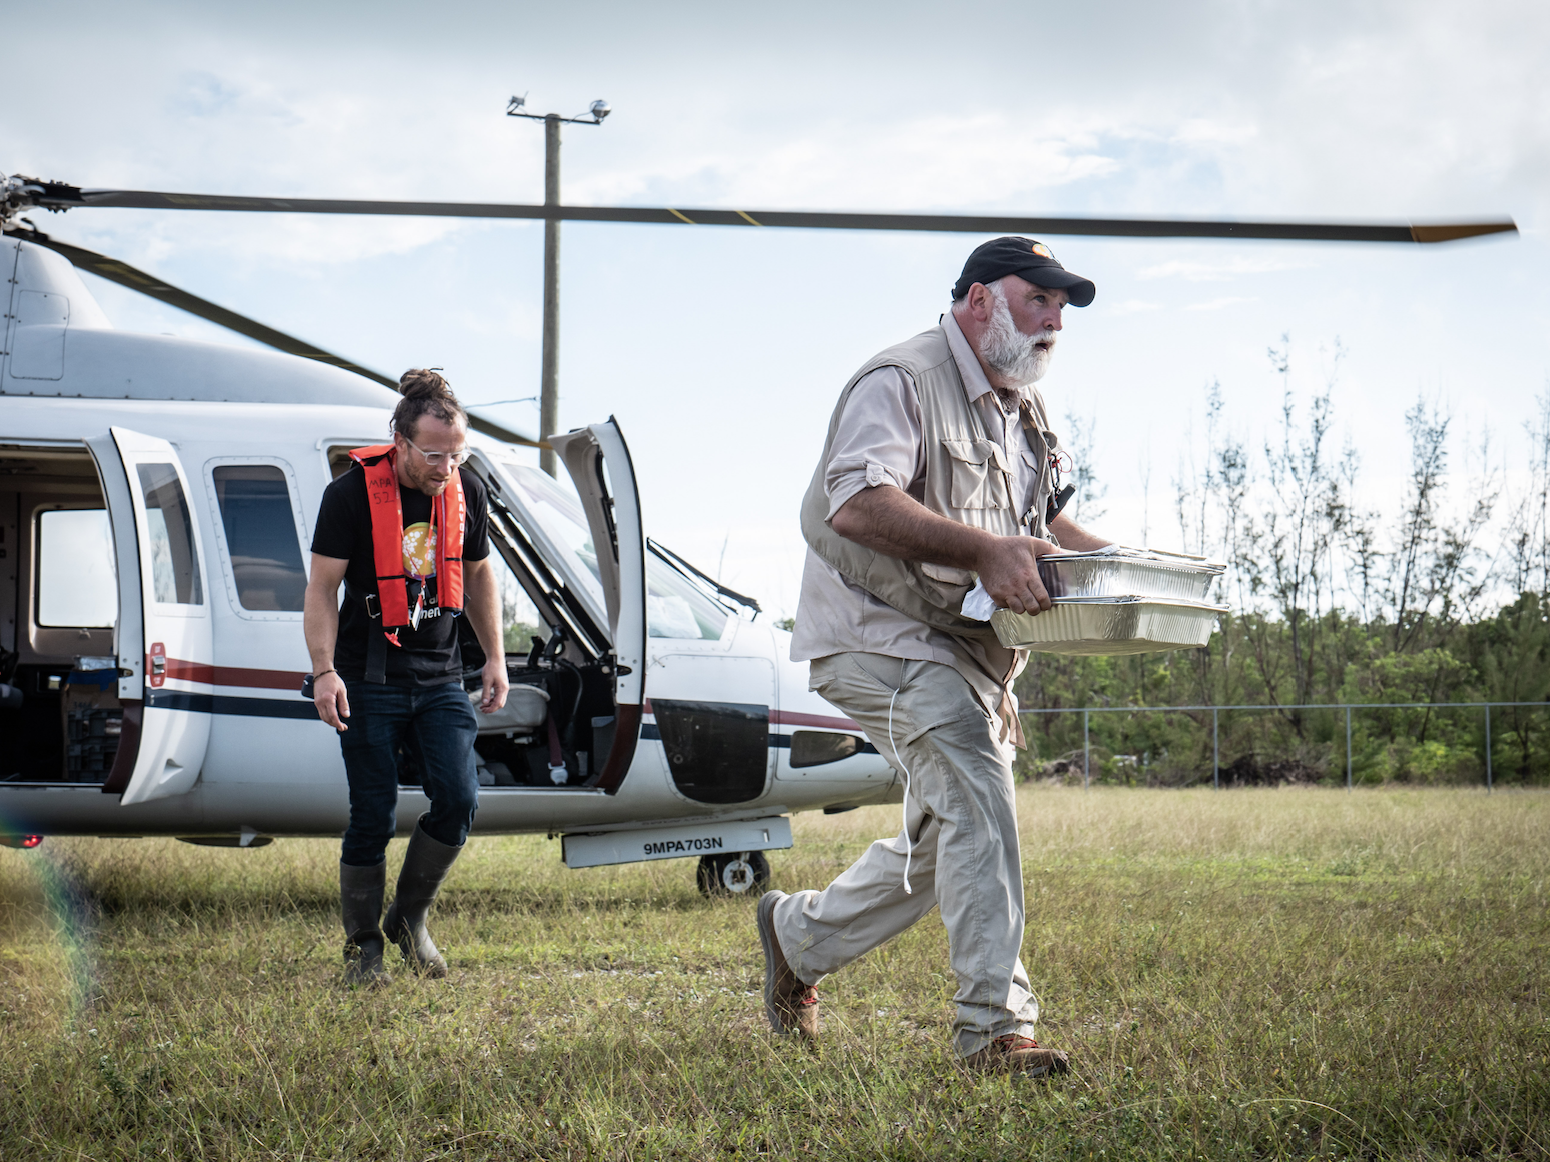 National Geographic Documentary Films Announces Feature Project With Ron Howard, Brian Grazer And Imagine Documentaries On Renowned Chef And Humanitarian José Andrés